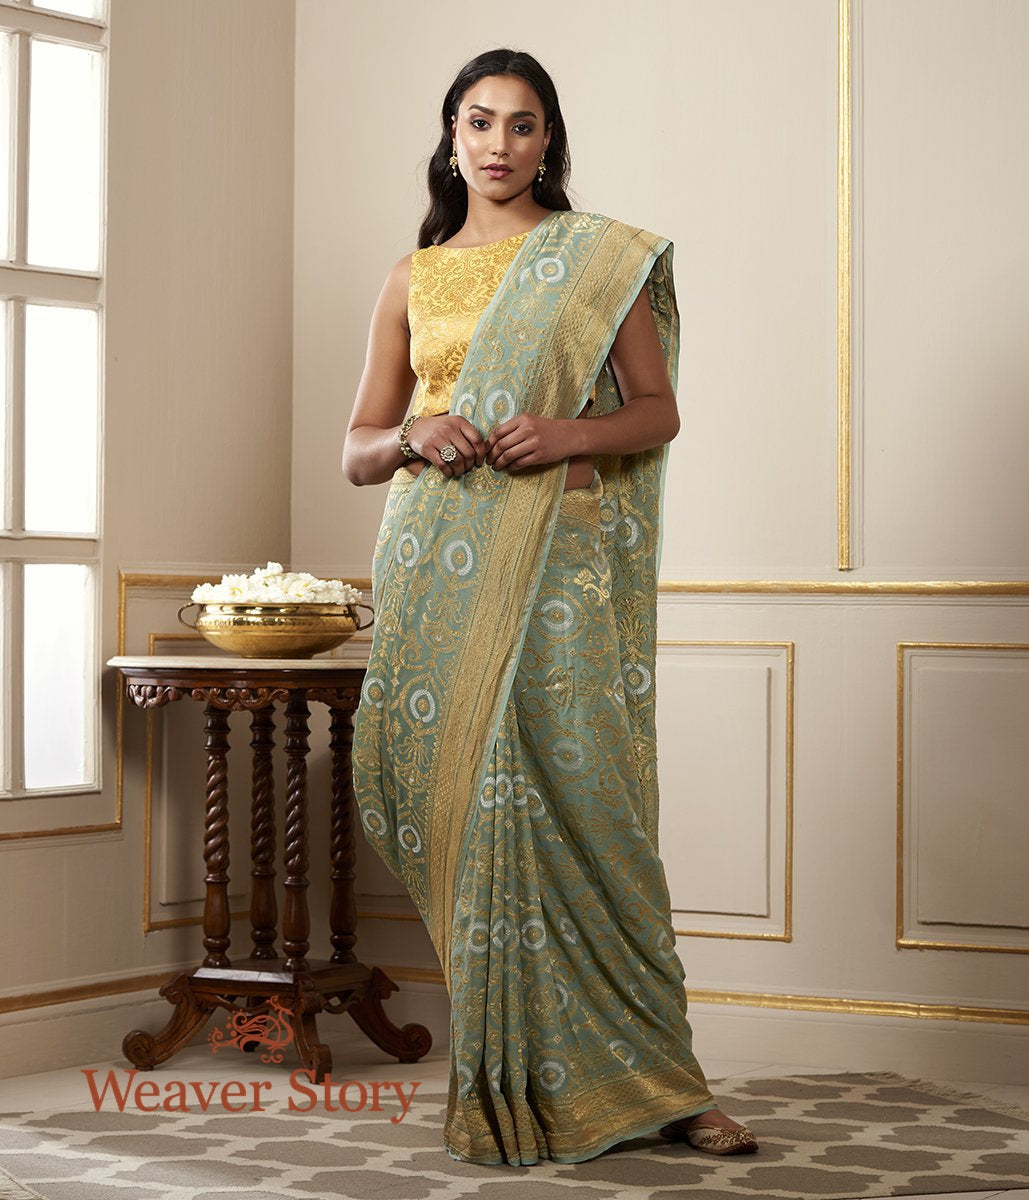 Handwoven Duck Egg Blue Georgette Patola Saree